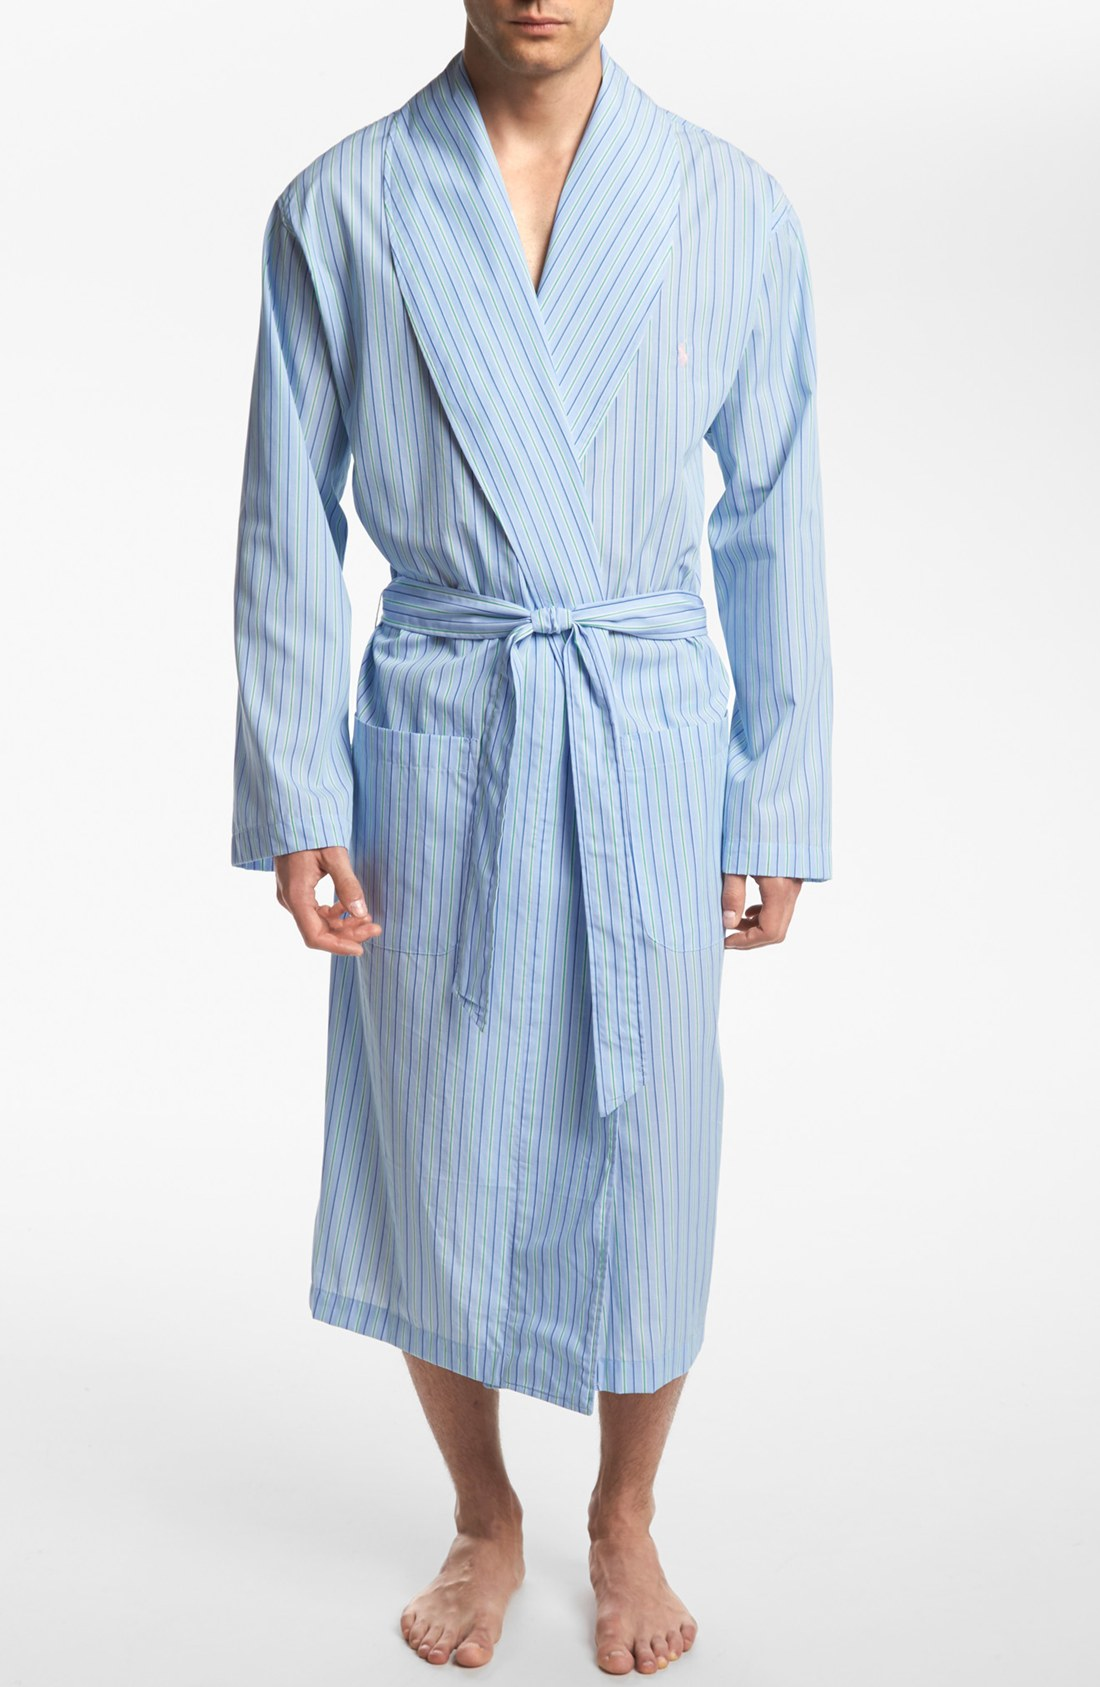 polo ralph lauren woven cotton robe in blue for men save 10 lyst. Black Bedroom Furniture Sets. Home Design Ideas